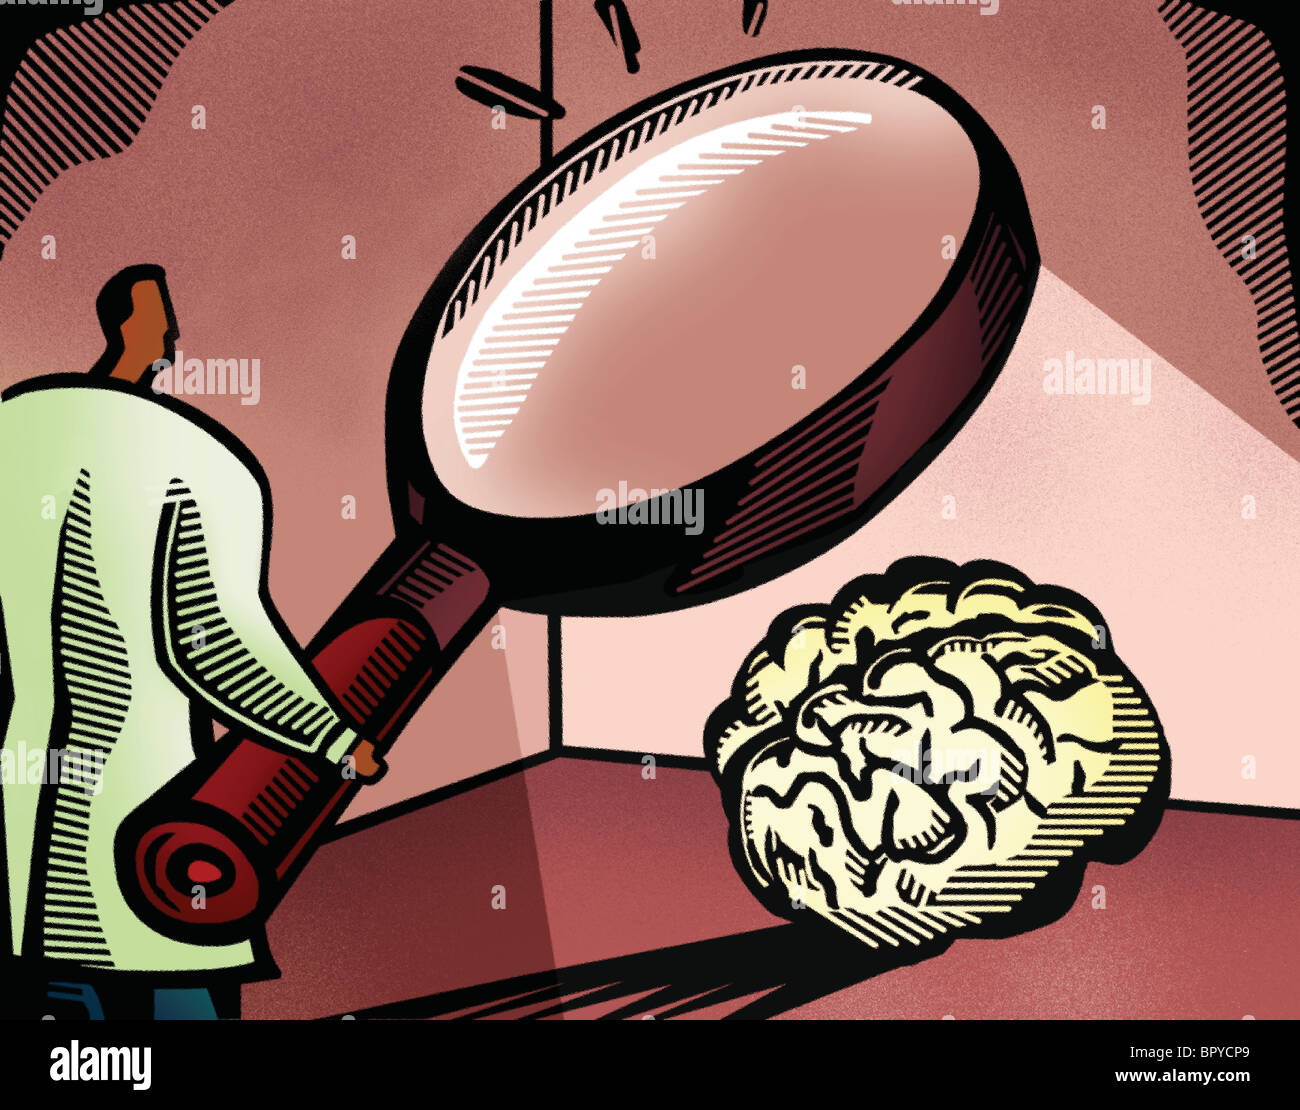 Doctor looking at a brain through a giant magnifying glass Stock Photo